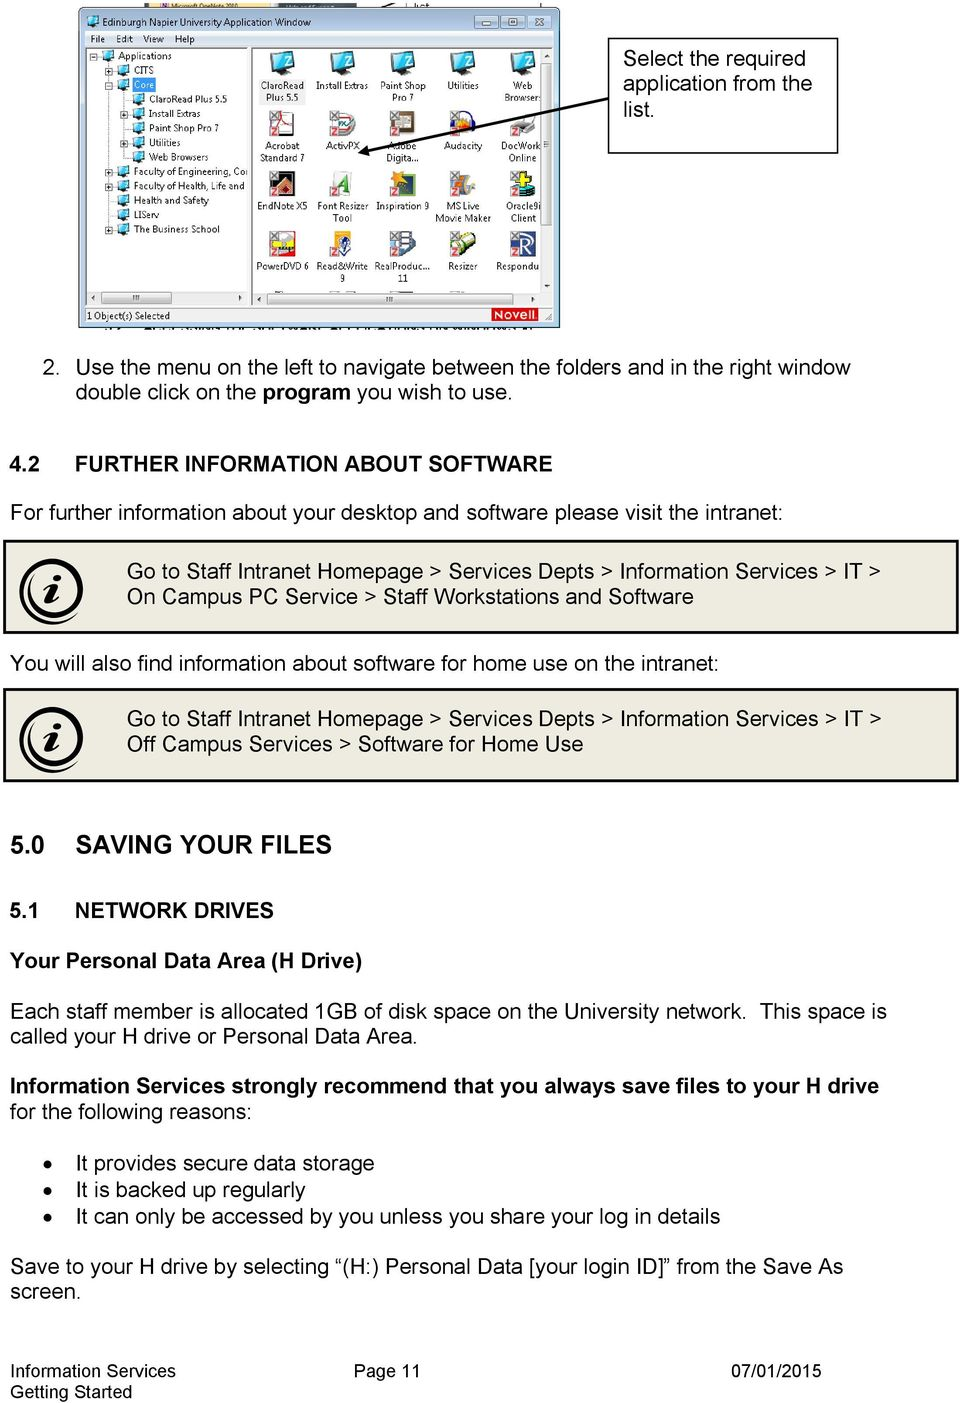 information about software for home use on the intranet: Off Campus Services > Software for Home Use 5.0 SAVING YOUR FILES 5.